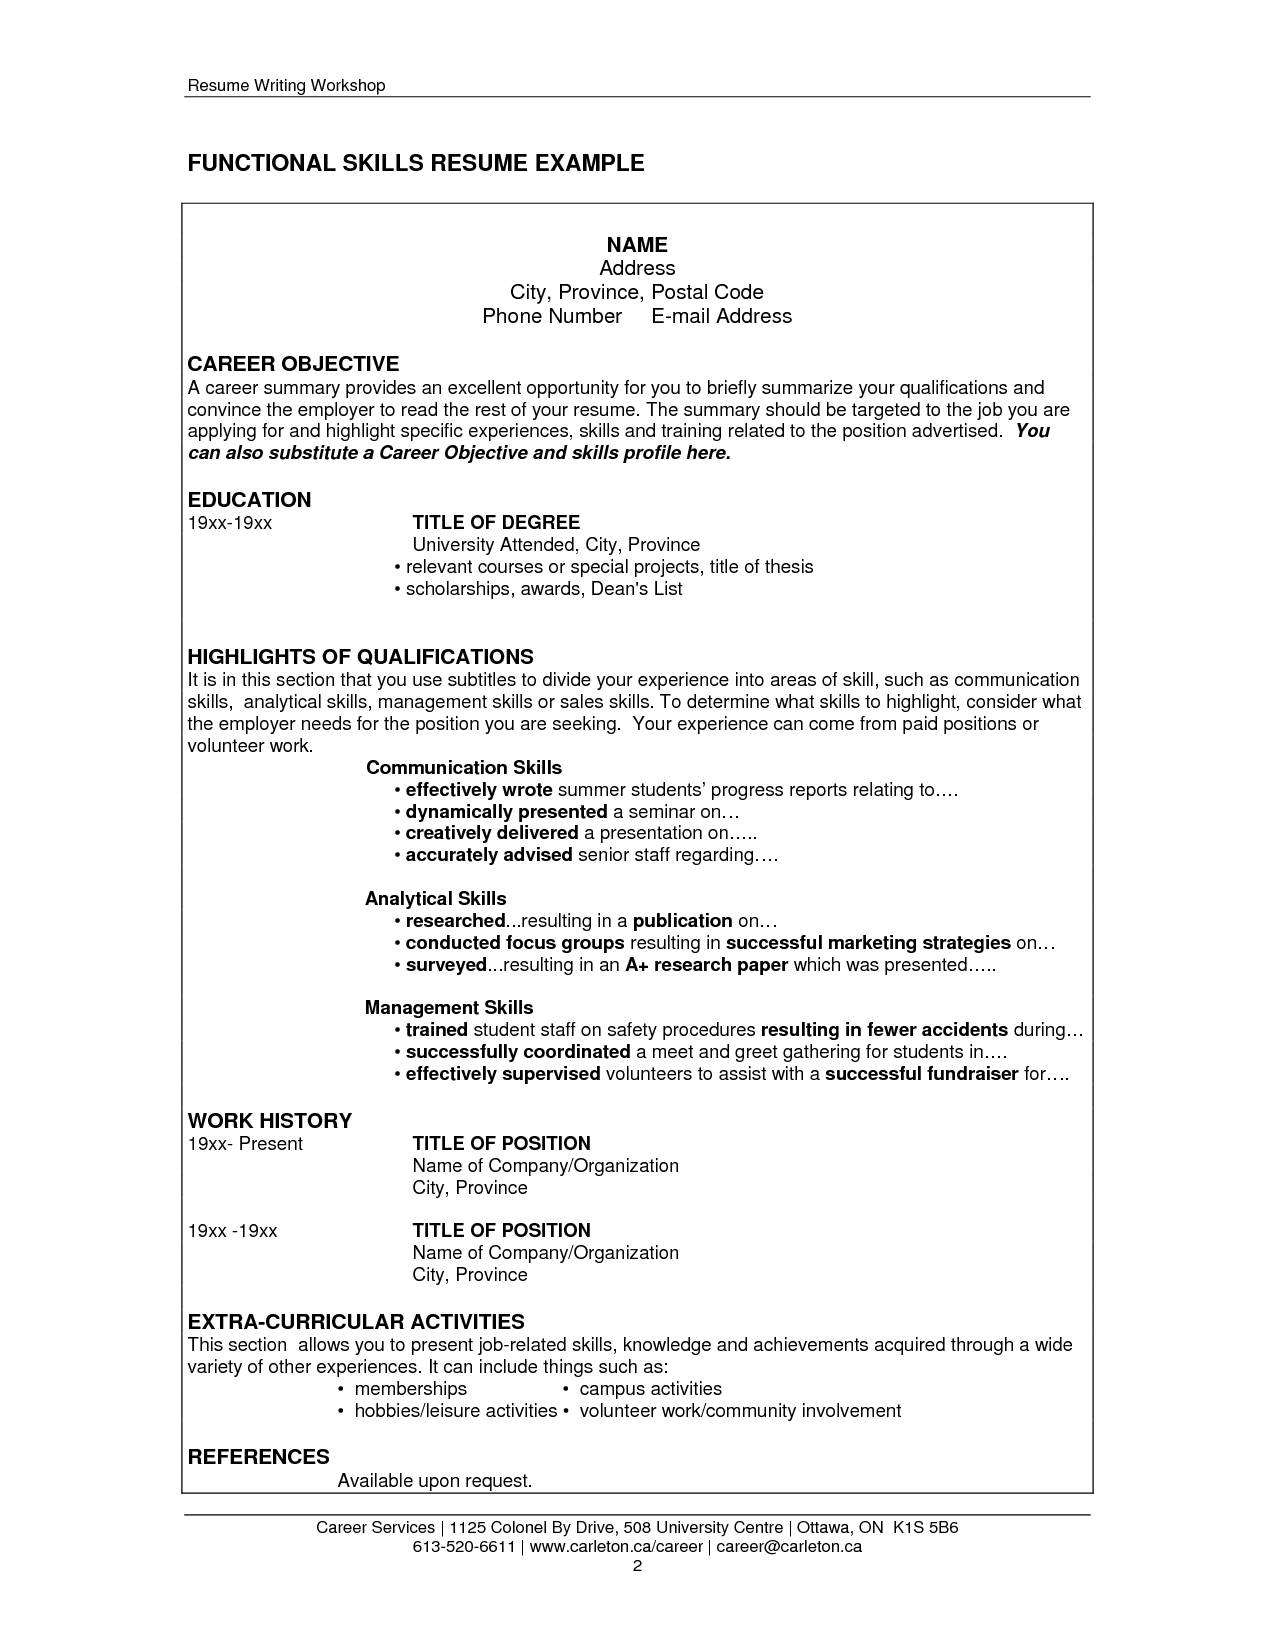 profile resume sample cover letter chief executive officer ...